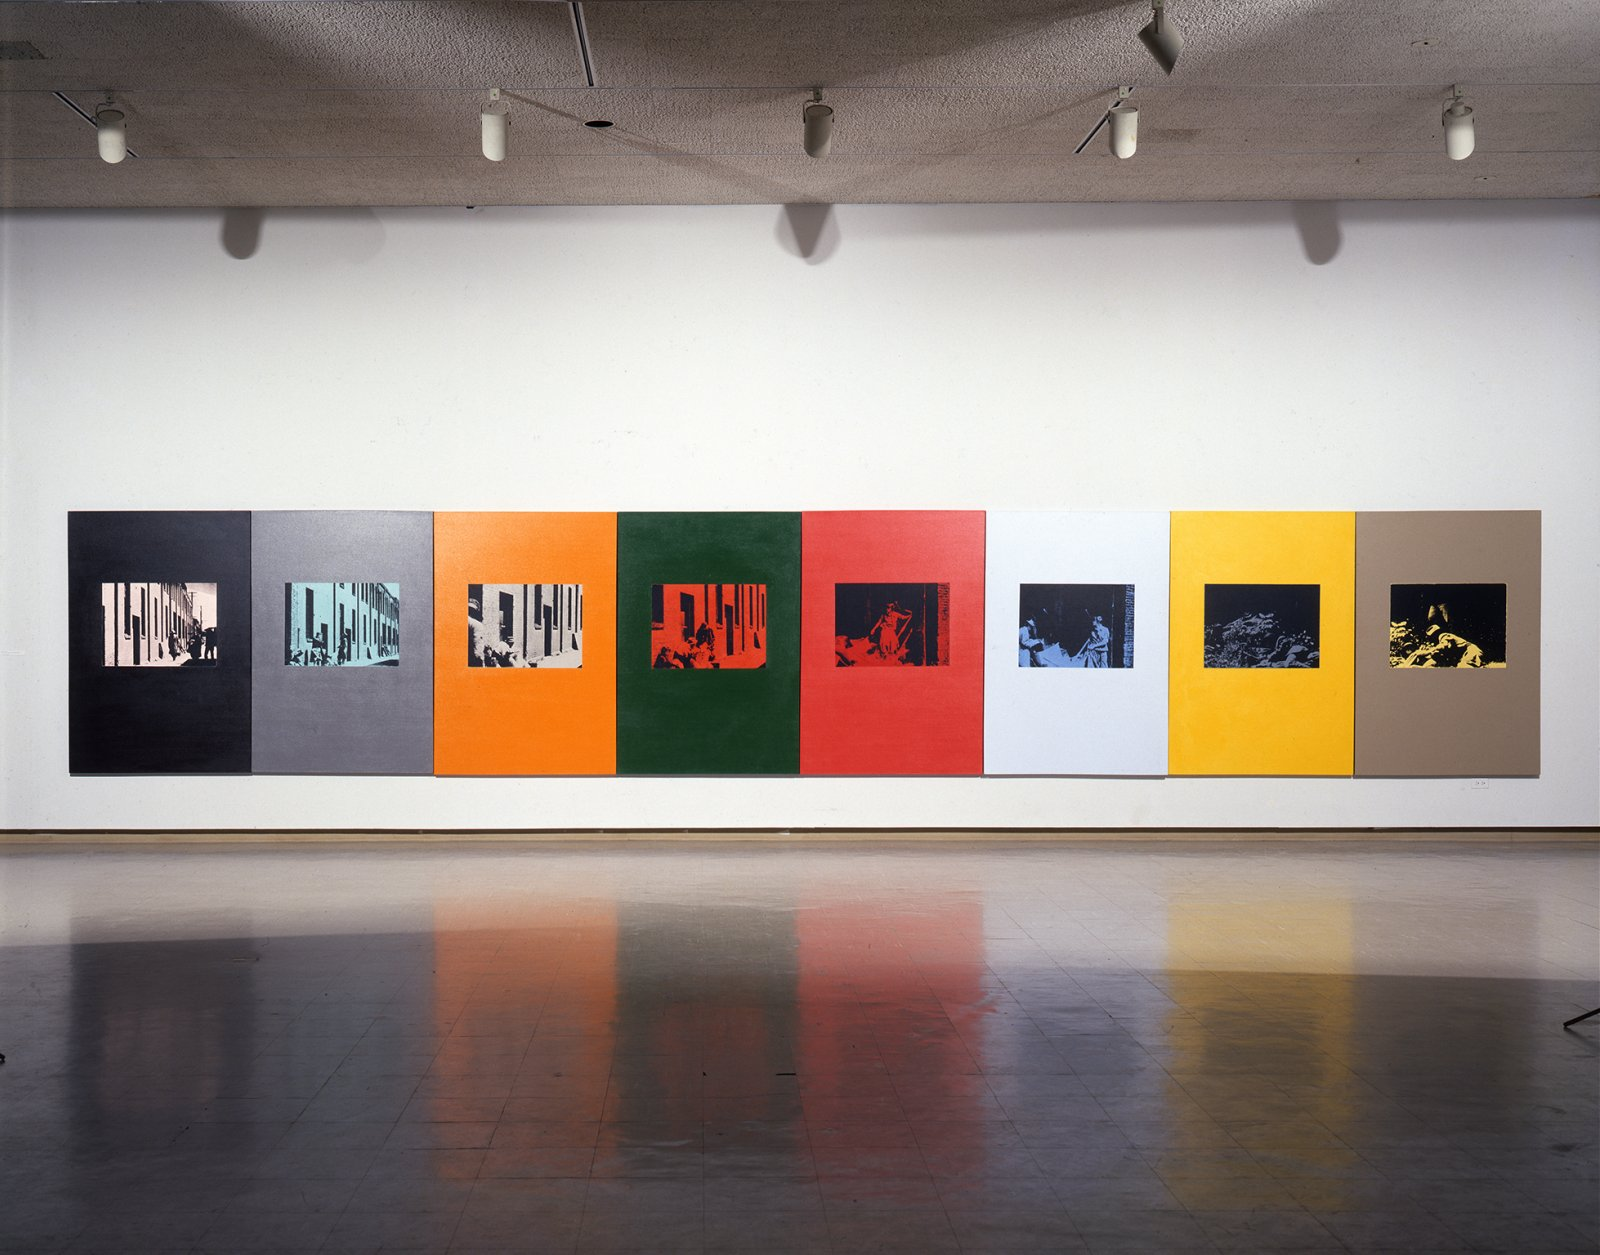 Ian Wallace,Poverty 1982, 1982,oil-based silkscreen over acrylic paint on canvas, 8 panels,71 x 376 in. (180 x 955 cm)